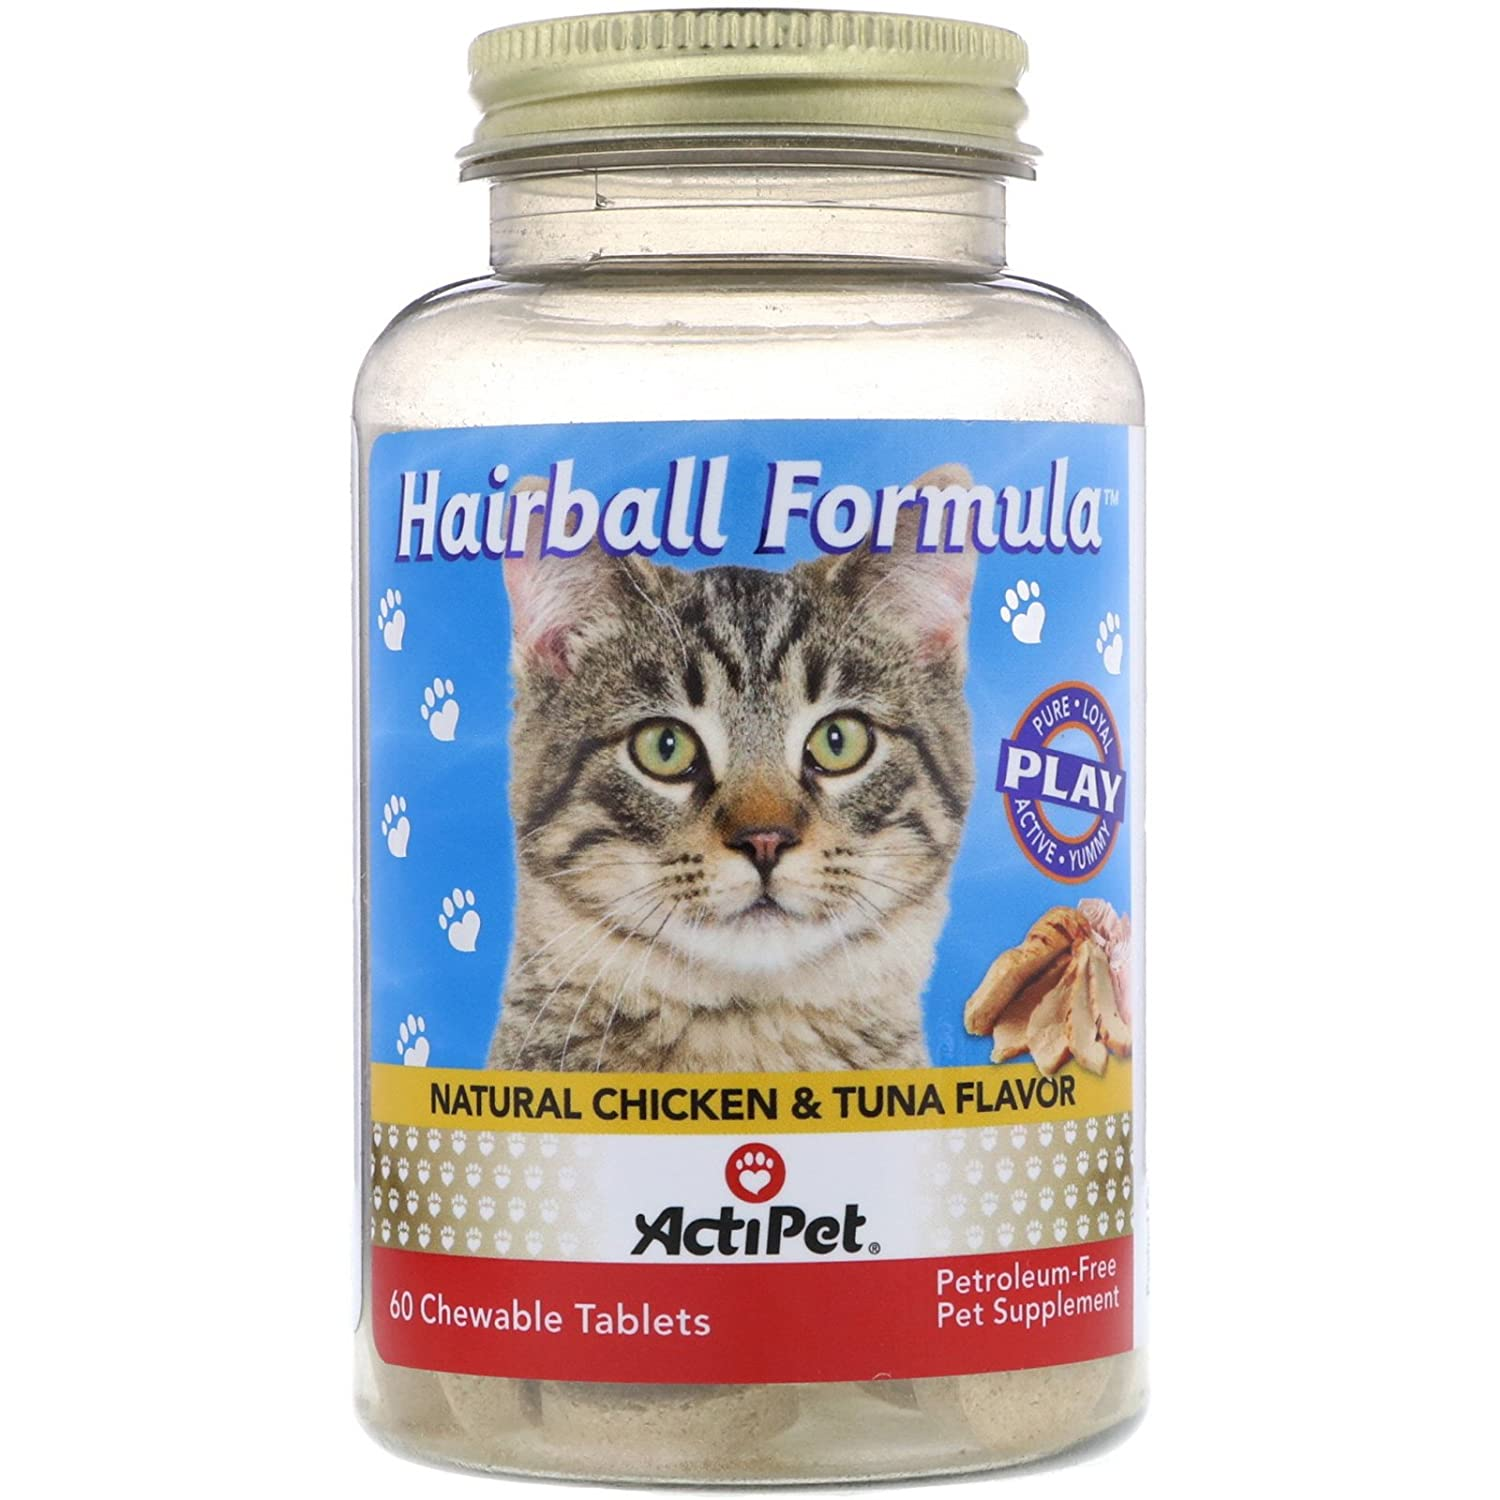 Hairball Formula by ActiPet - 60 piece Nutraceutical